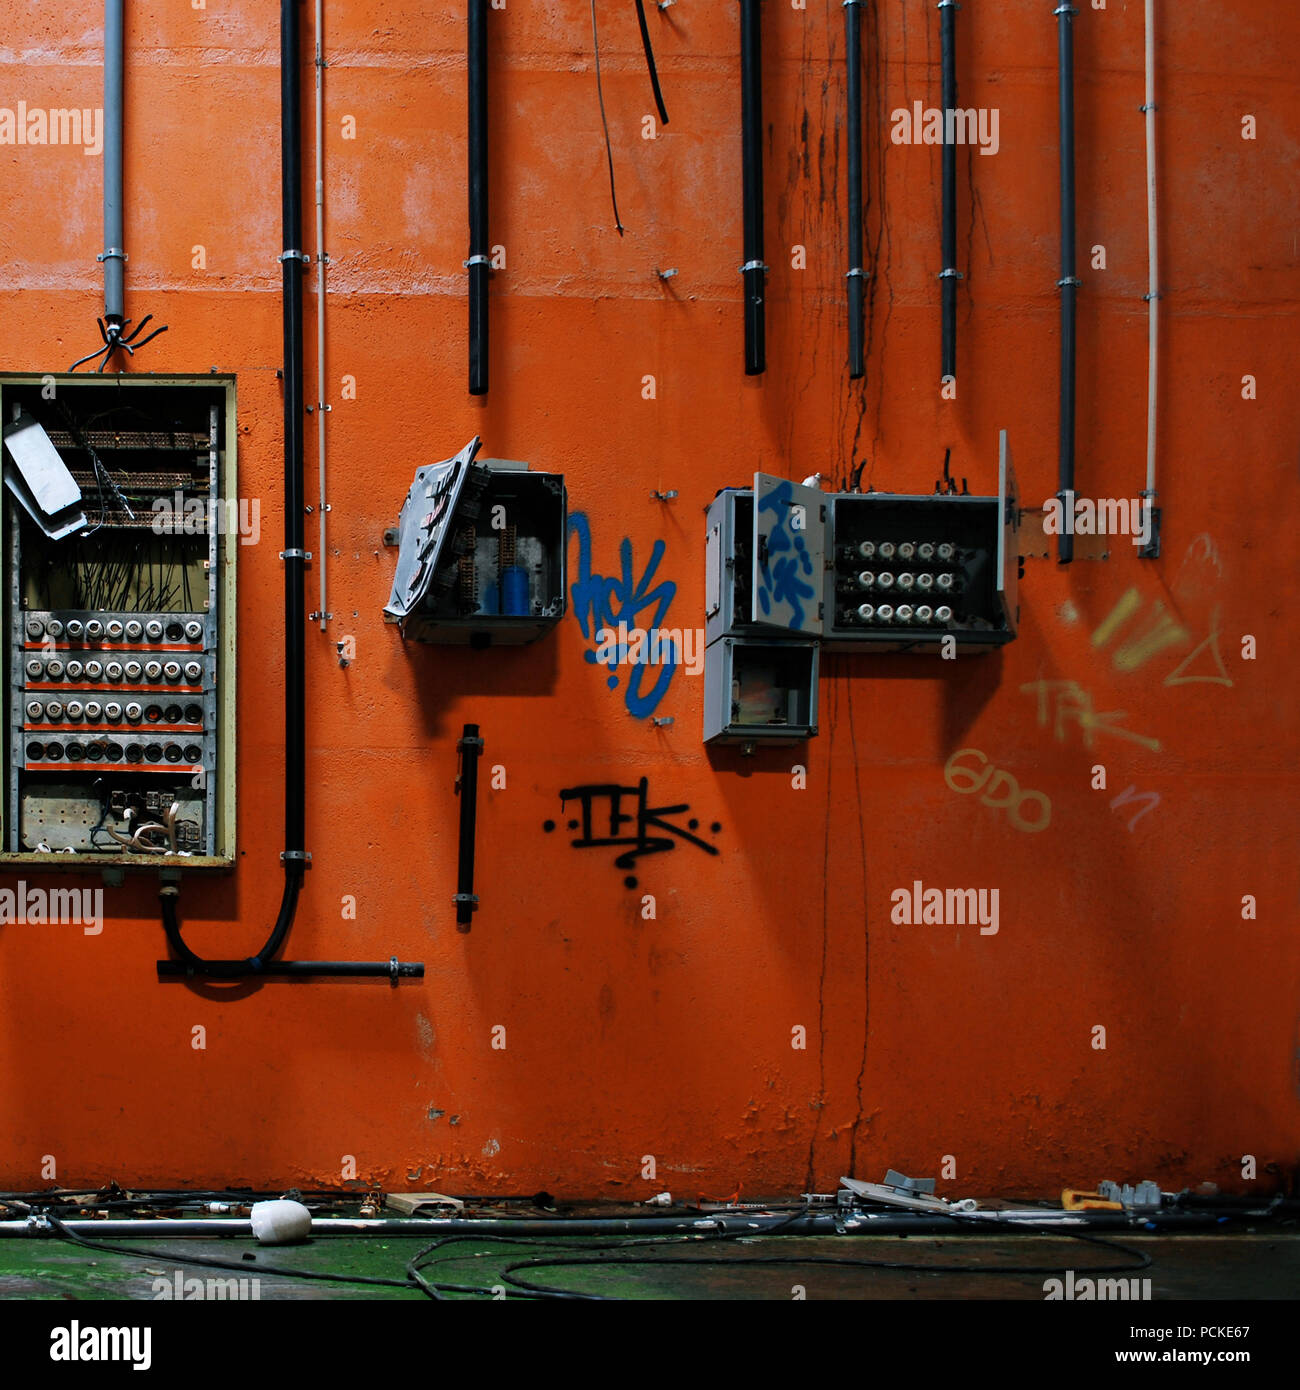 Train Fuse Box Starting Know About Wiring Diagram Fld 120 Location Electricity Conduction Stock Photo 214328527 Alamy Rh Com Rust Yard